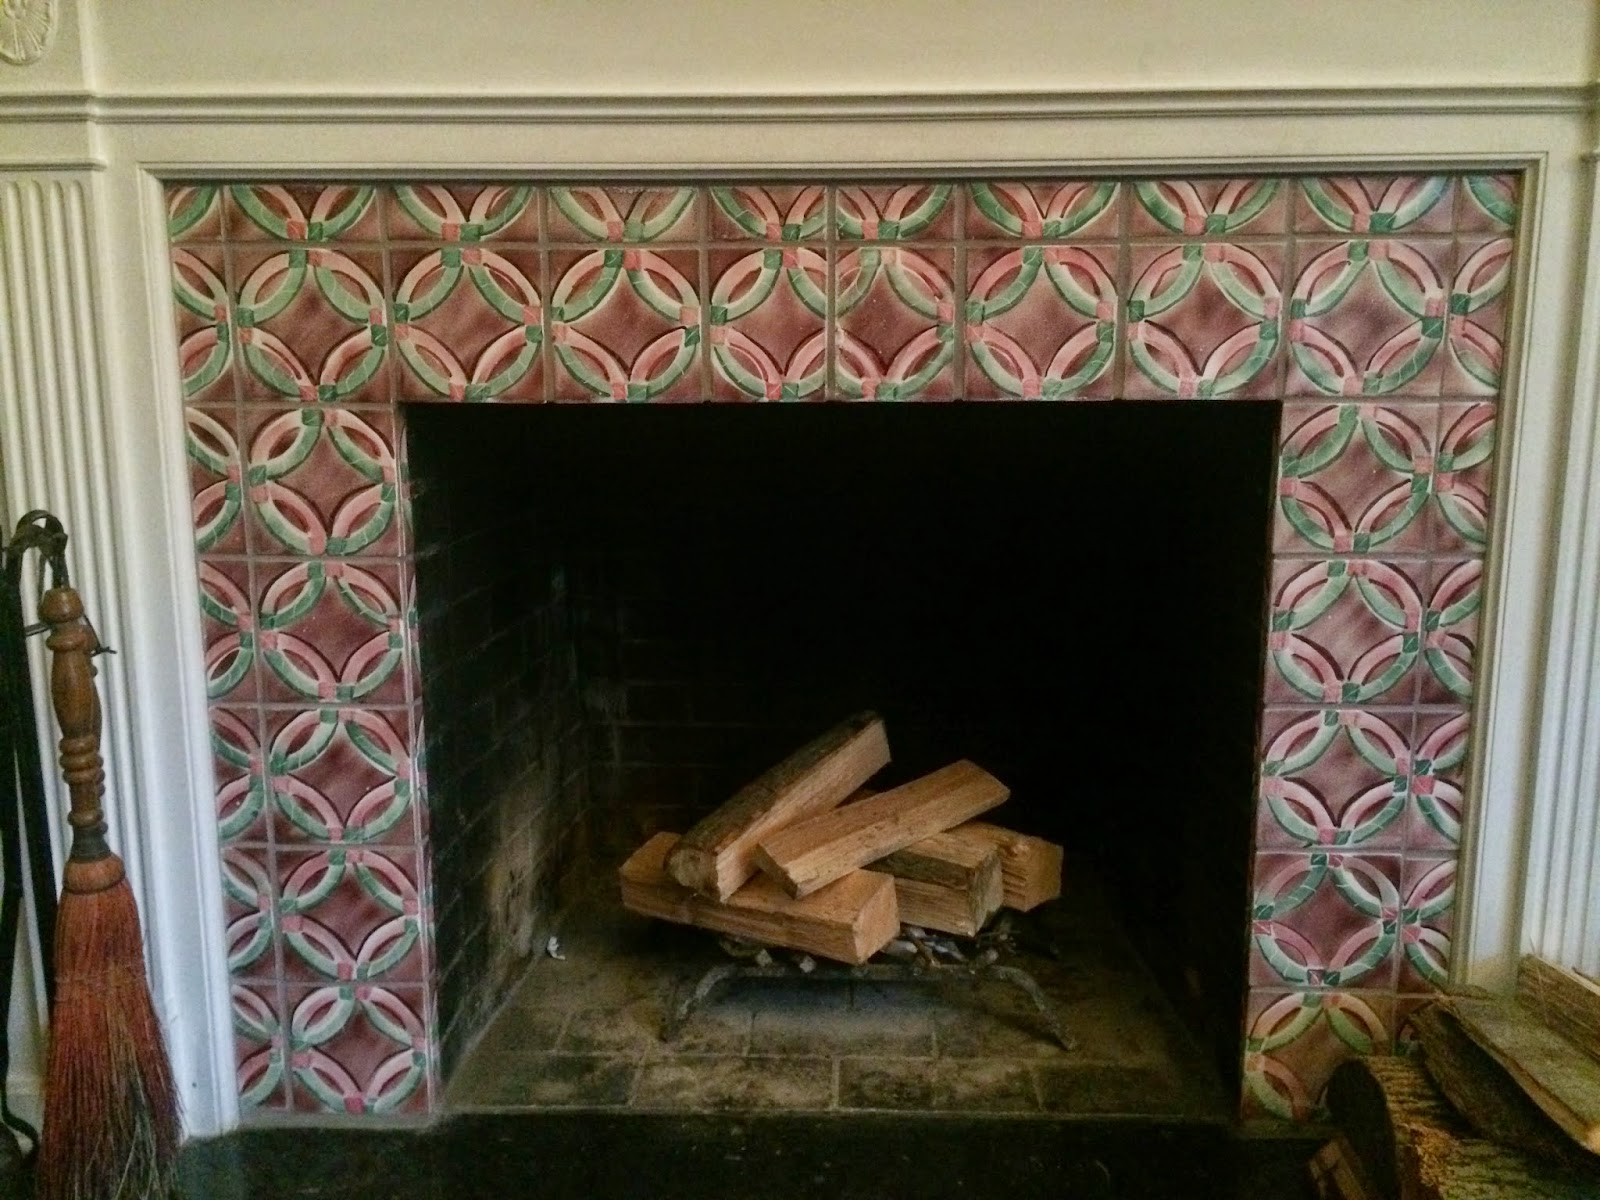 This Post Features Ceramic Tile For A Fireplace Surround Created By Me Using The Pattern Found In An Amish Quilt Design Fits Perfectly With